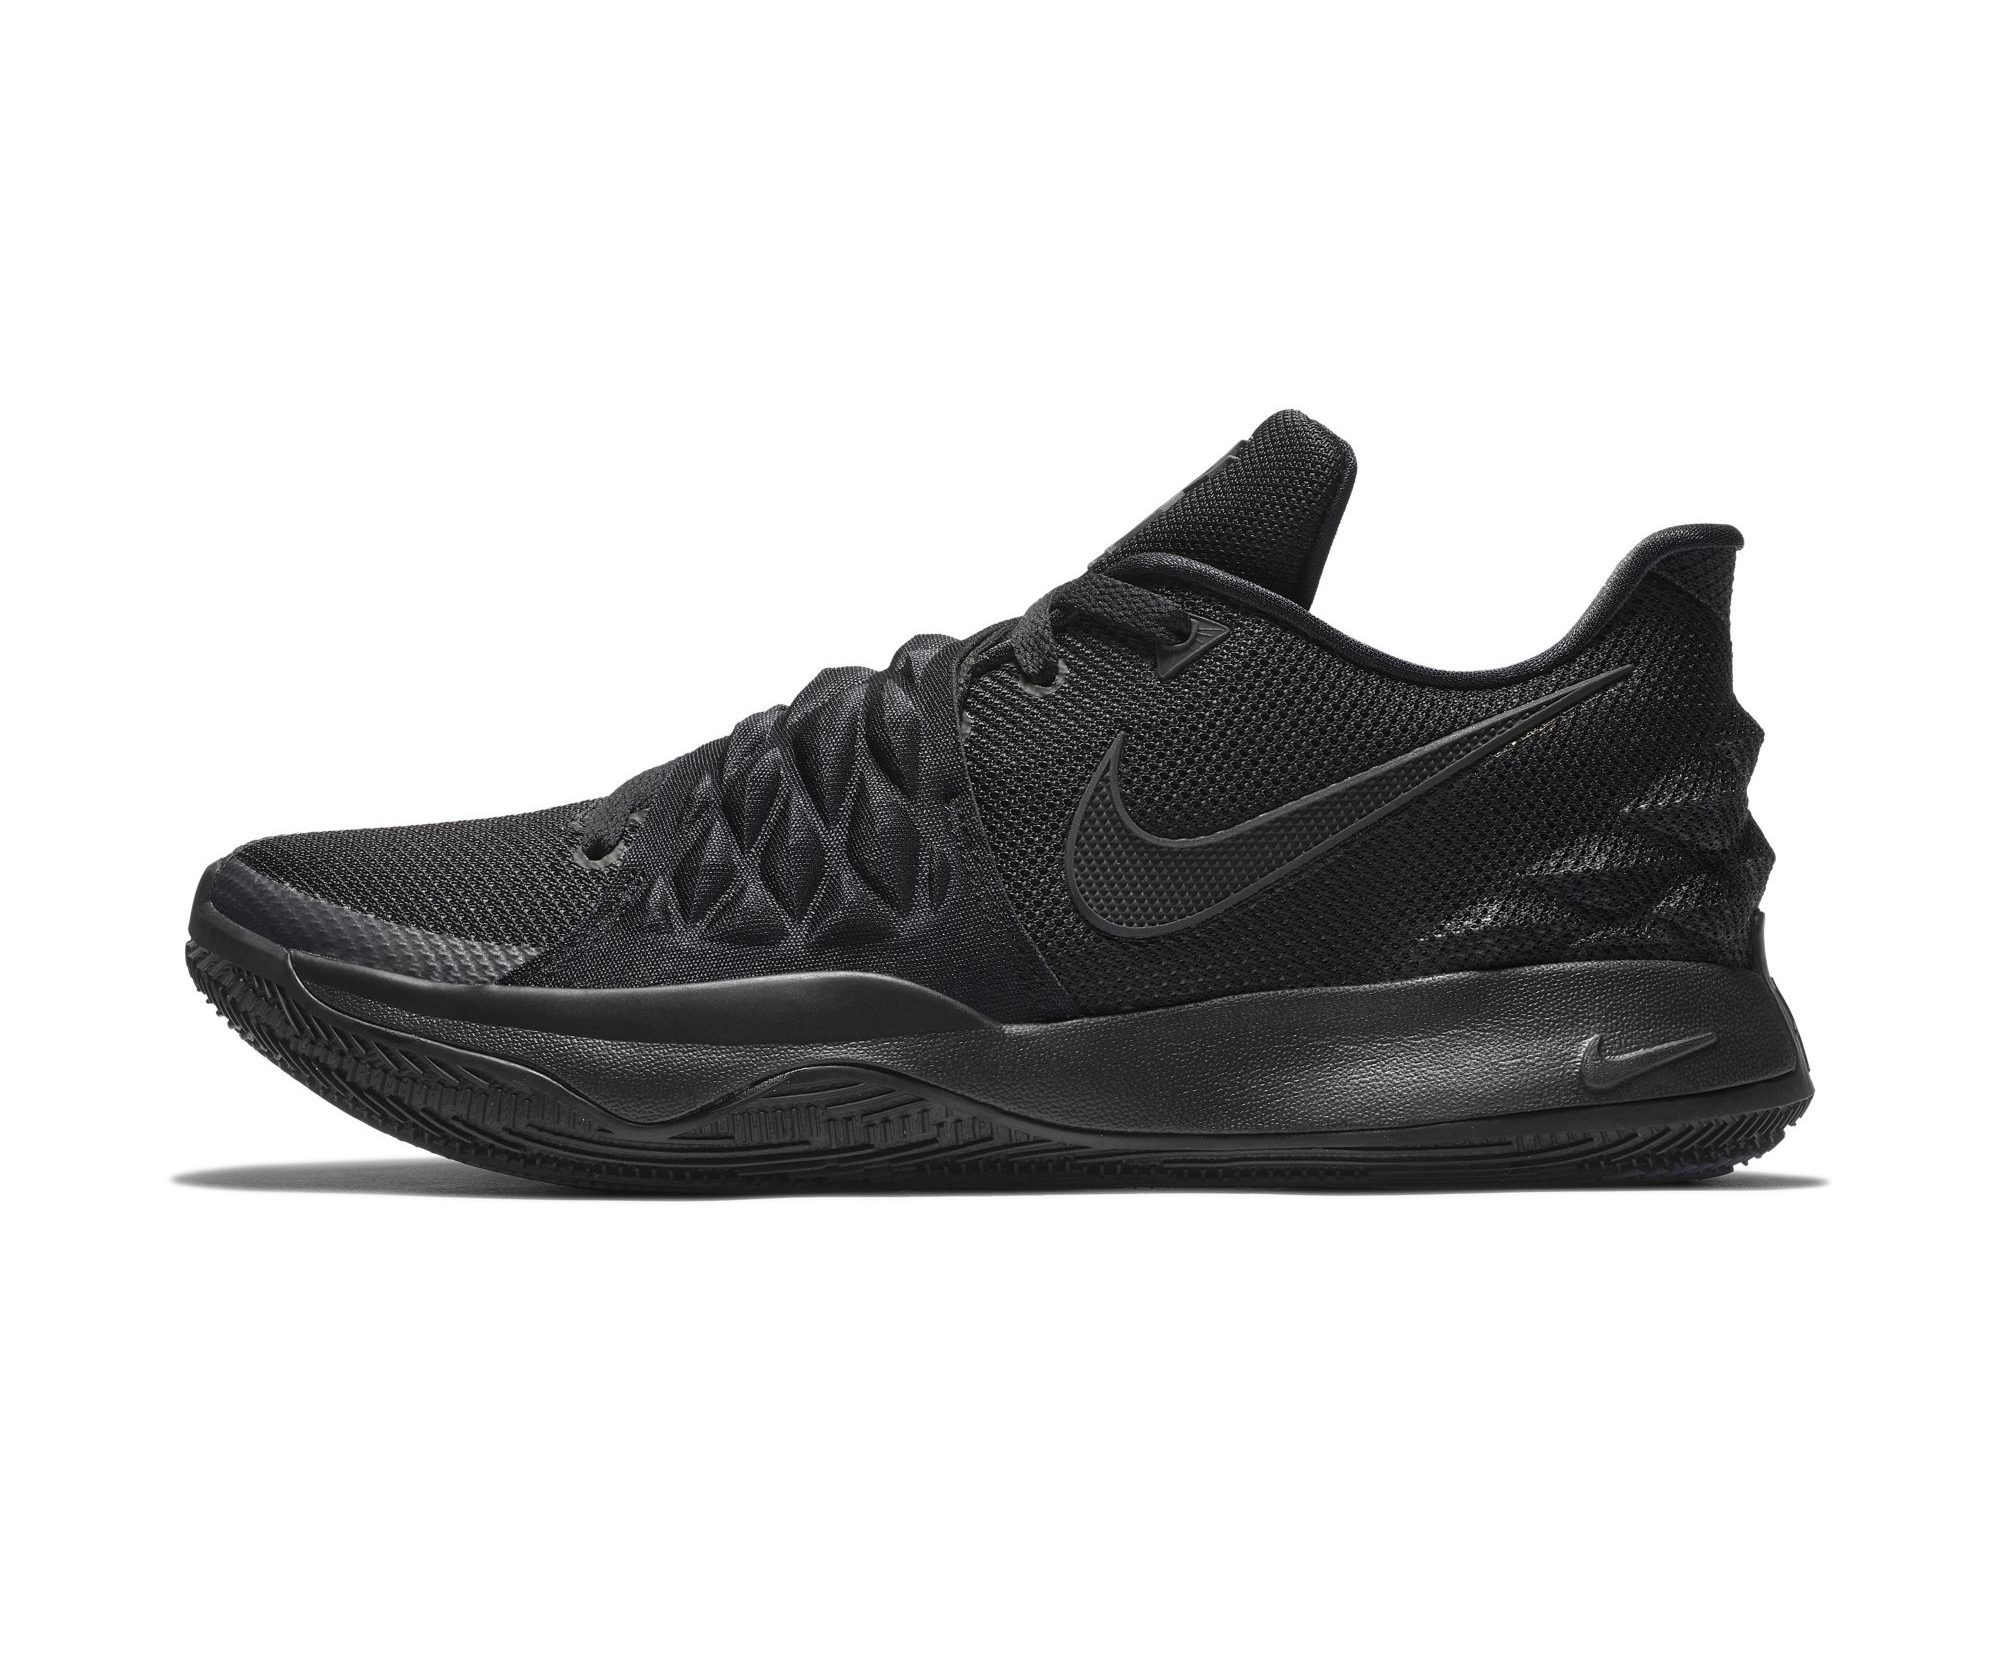 NIKE KYRIE LOW BLACK:BLACK 3